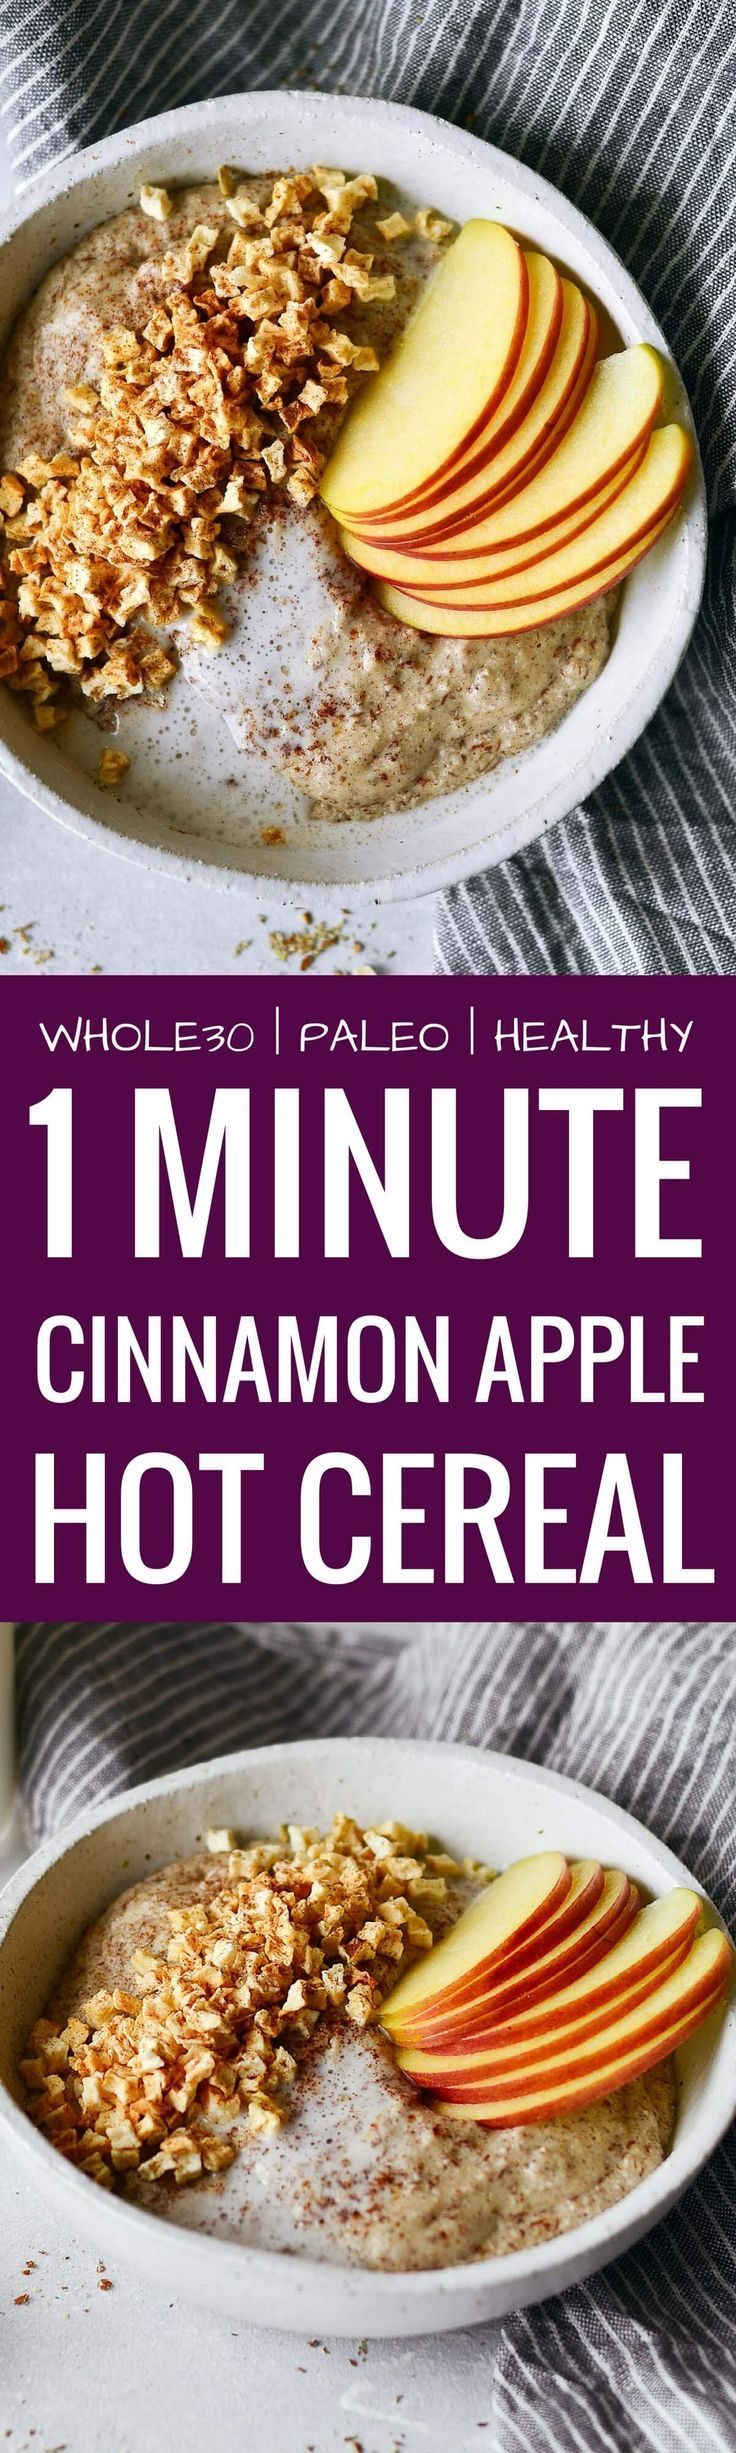 Instant apple cinnamon hot cereal. Rich and creamy whole30 breakfast cereal. Made in one minute! Can be made ahead. Paleo, gluten free, sugar free, and dairy free. A great alternative to malt-o-meal and oatmeal. Deliciously addicting and topped with apple crunchies and cinnamon. Whole30 breakfast recipe. Easy paleo breakfast ideas. Whole30 breakfast ideas. paleo cereal recipe. whole30 meal plan. Easy whole30 dinner recipes. Easy whole30 dinner recipes. Whole30 recipes. Whole30 lunch. Whole30…